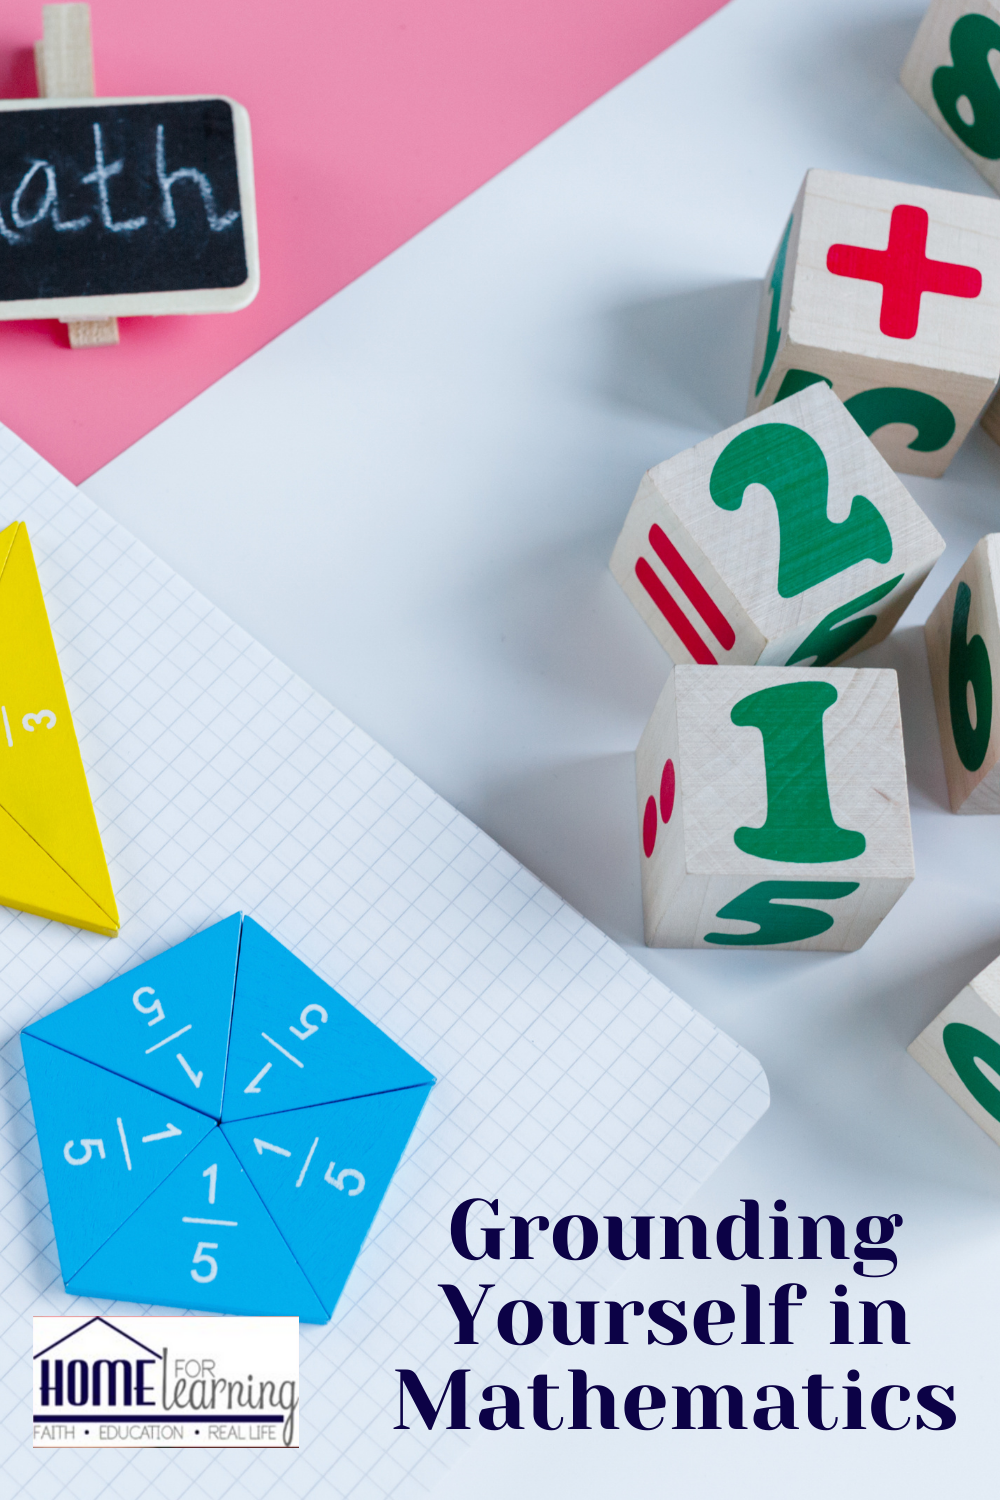 Parents and teachers, please dedicate quality time to rounding and estimating with your students. You'll see that effort pay off as your child progresses through their math levels.